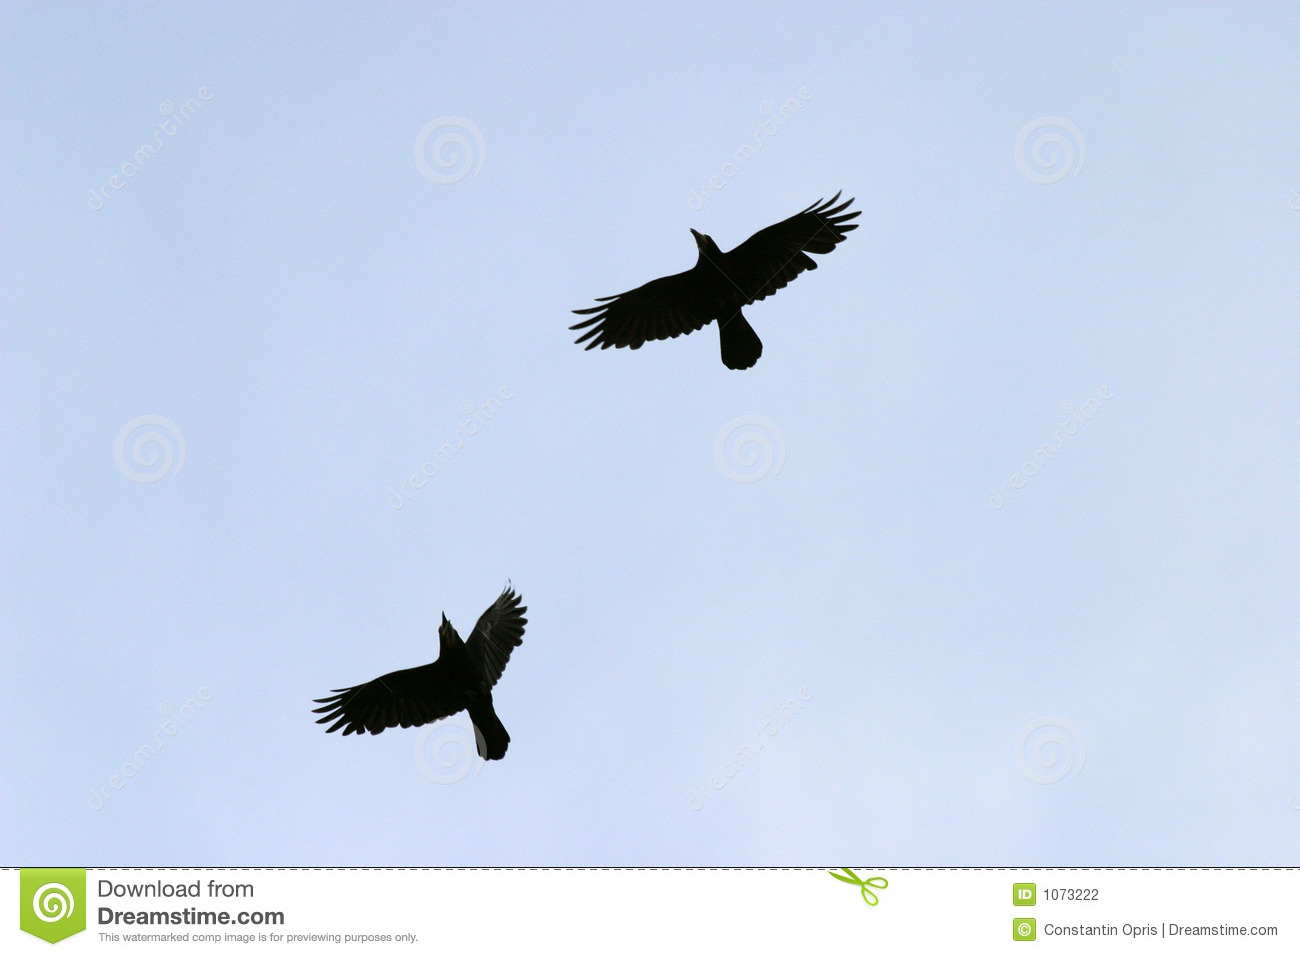 Flying Birds Free Stock Photos Download 3 416 Free Stock: Flying Birds Stock Photography